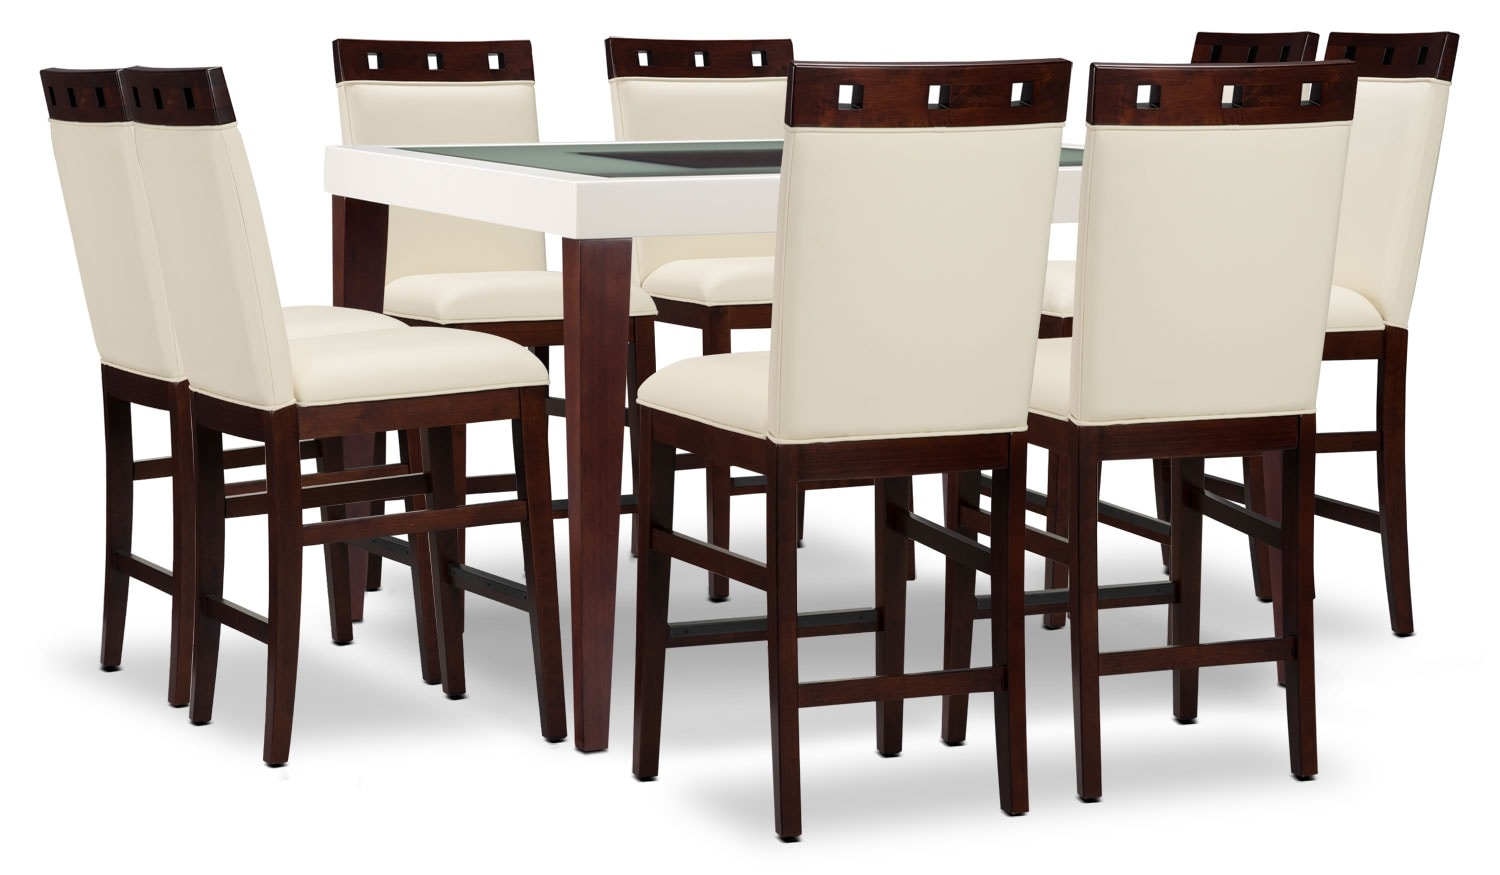 Dining Room Furniture - Zeno 9-Piece Counter-Height Dining Package with Wood Top Chair